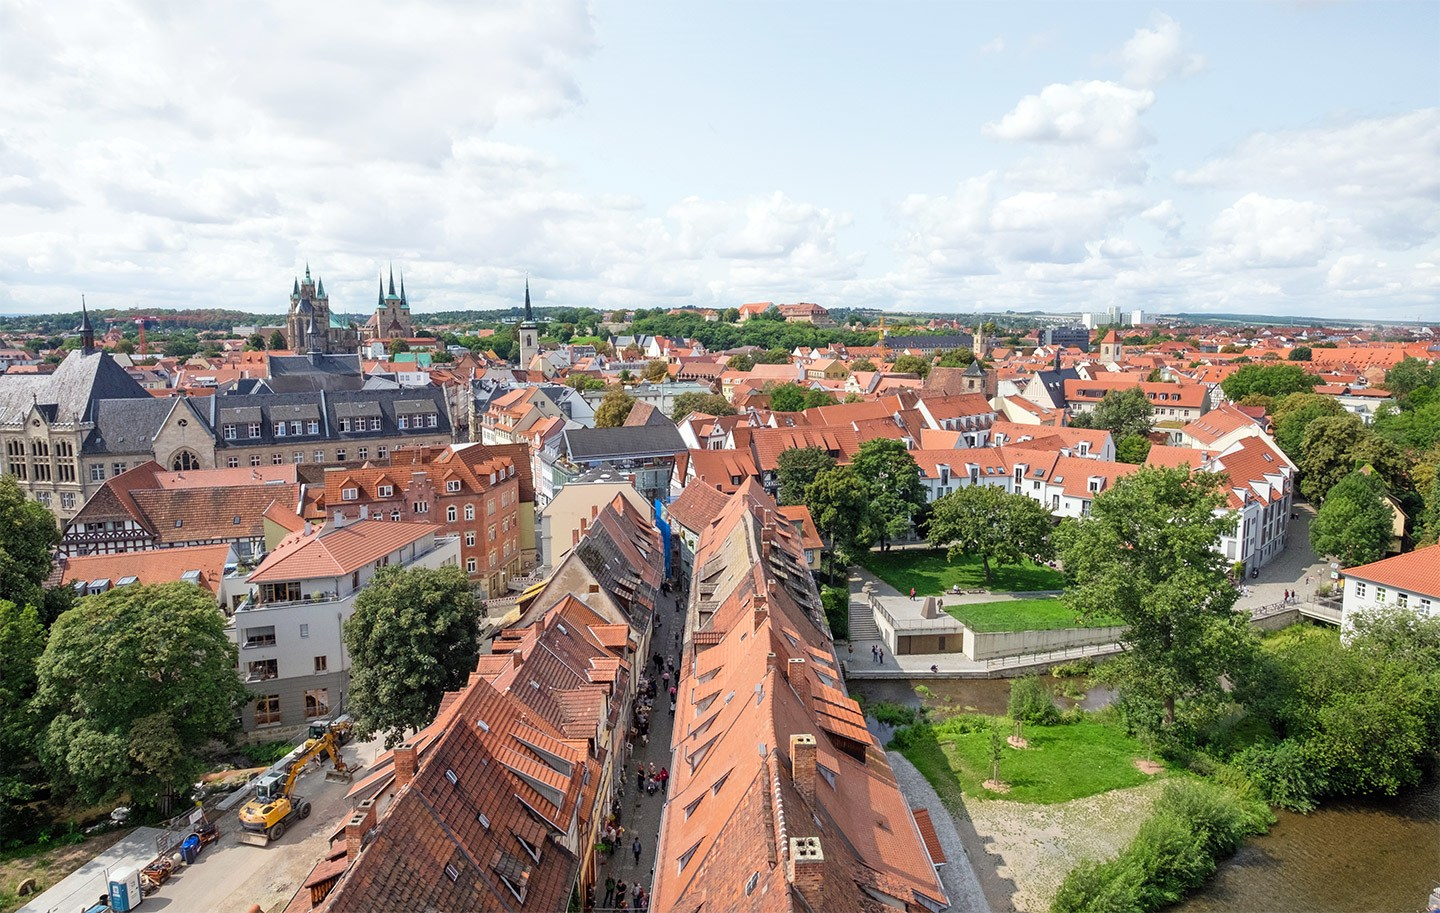 Views over Erfurt, Germany